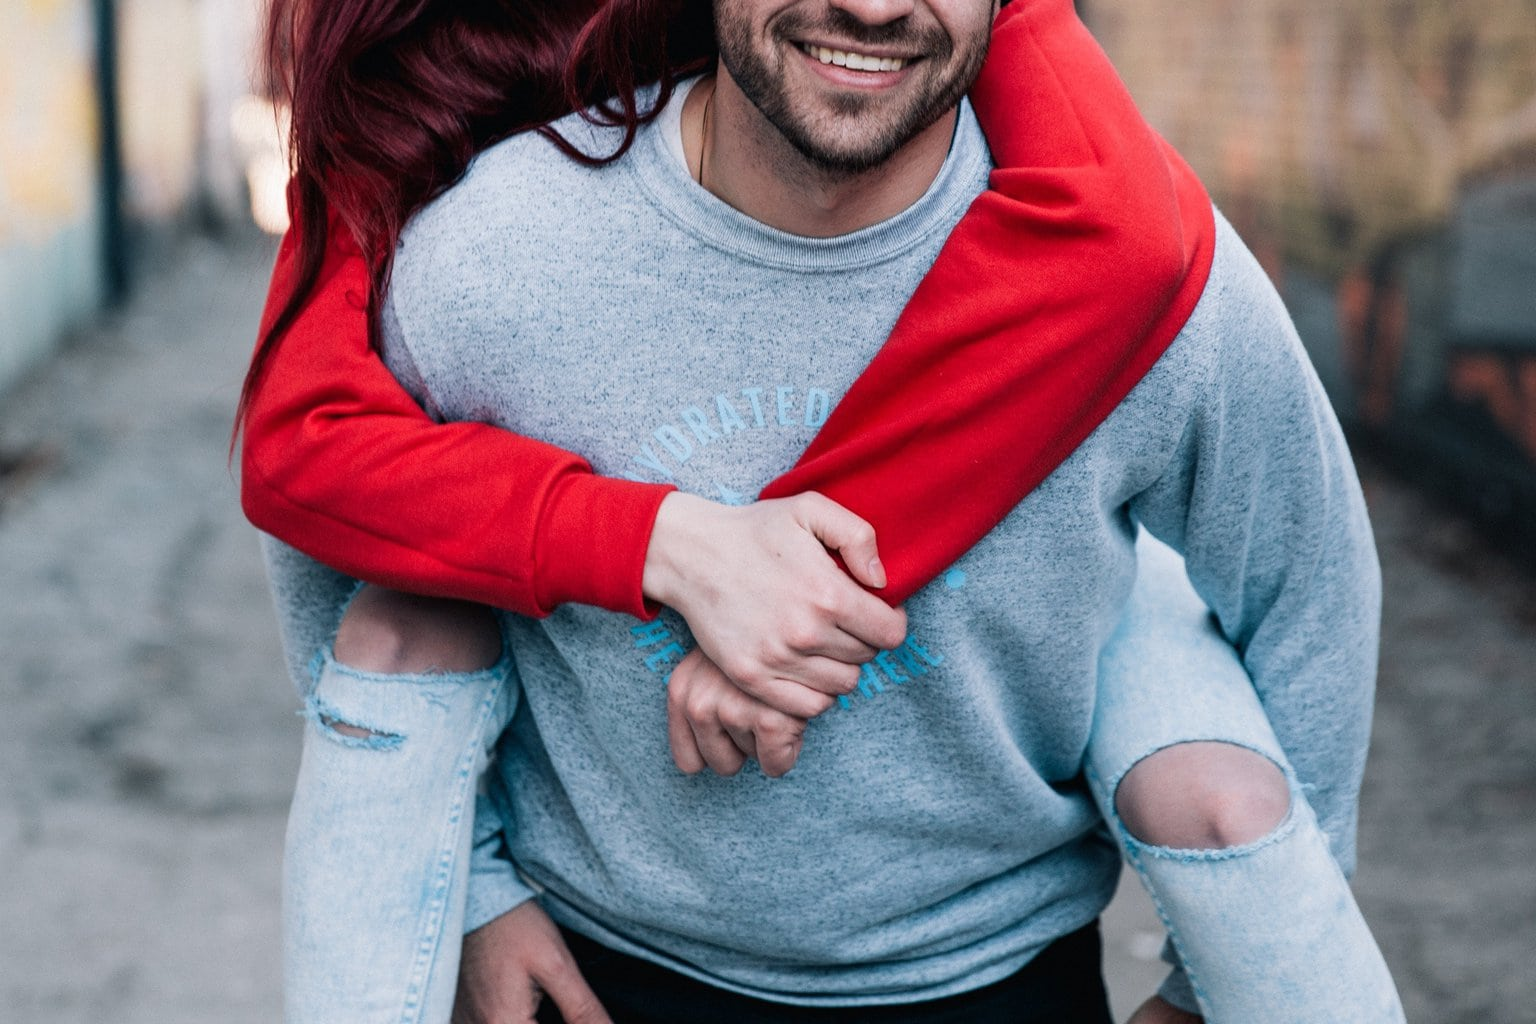 Photo of a couple on a date, with the boyfriend giving his girlfriend a piggyback ride